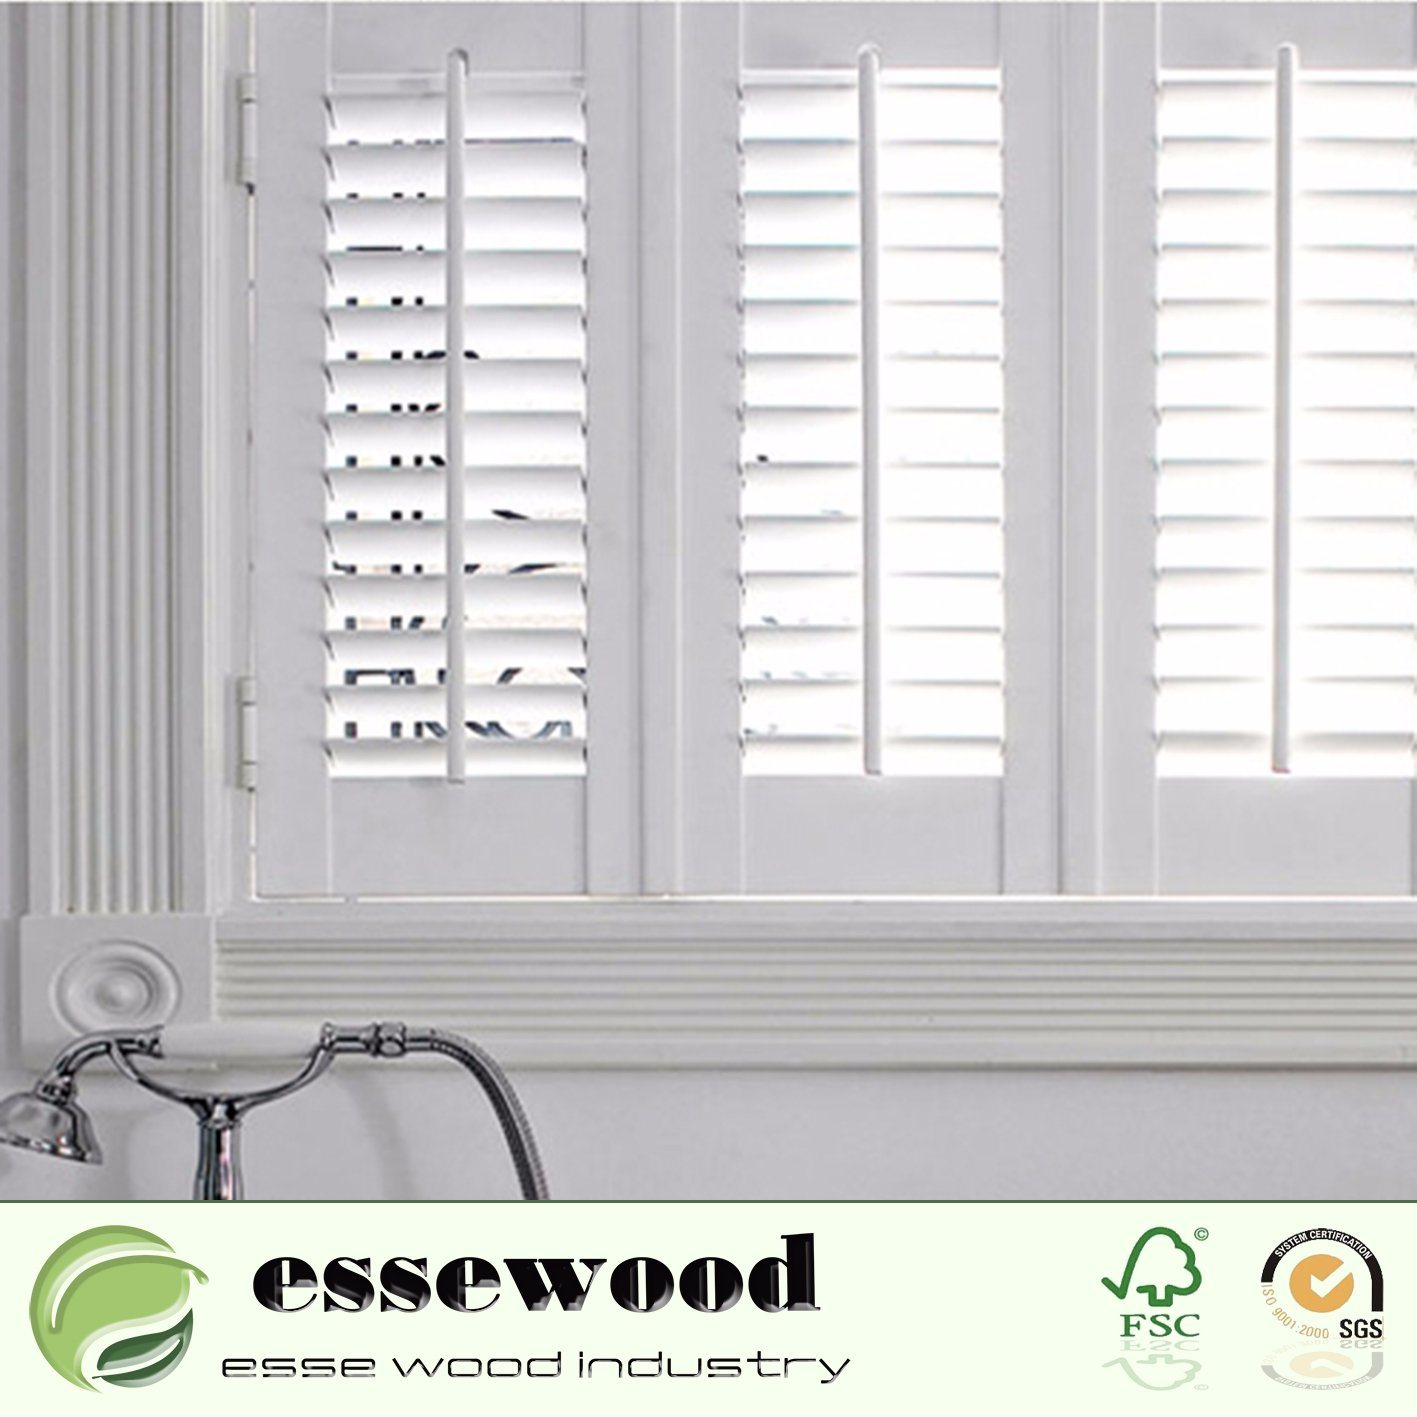 wood nextag compare shopping traditional prices homebasics brown real interior at products shutters decorative walnut